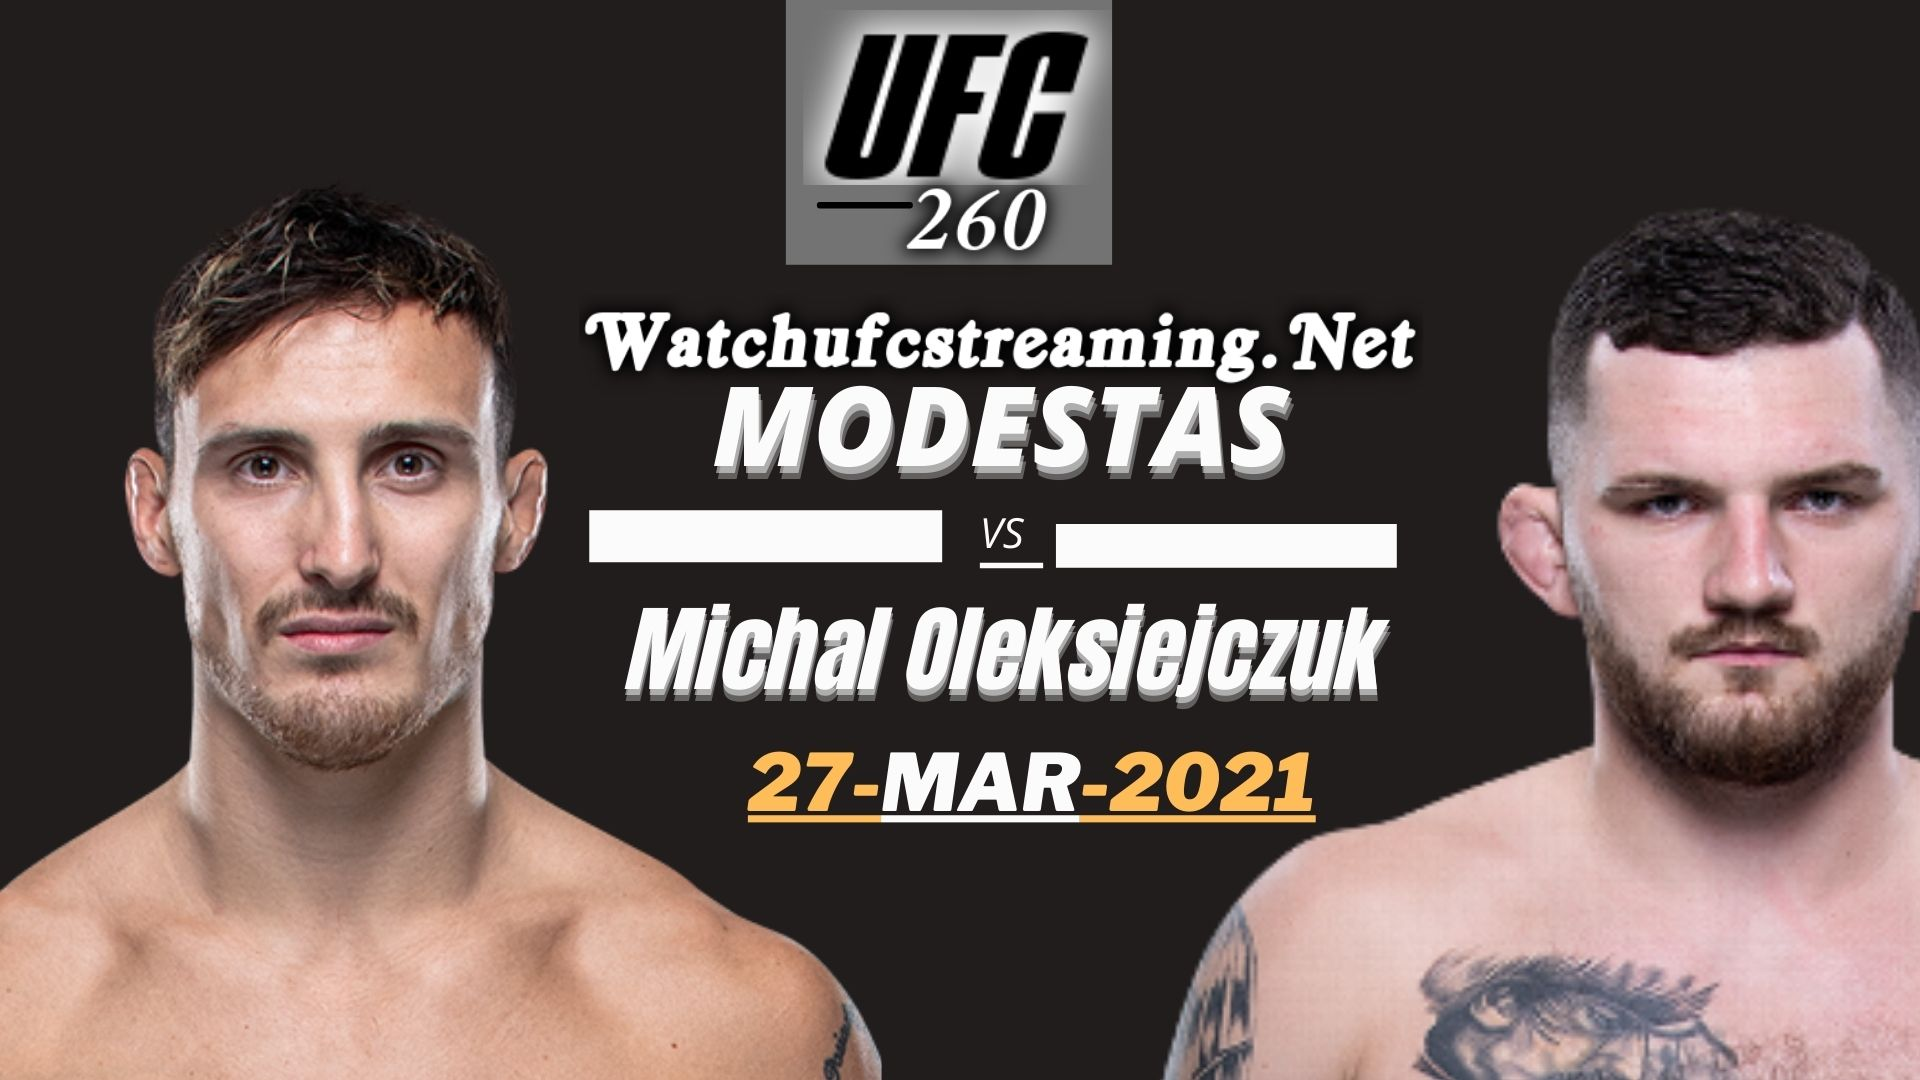 Highlights UFC 260 Bukauskas Vs Oleksiejczuk 2021